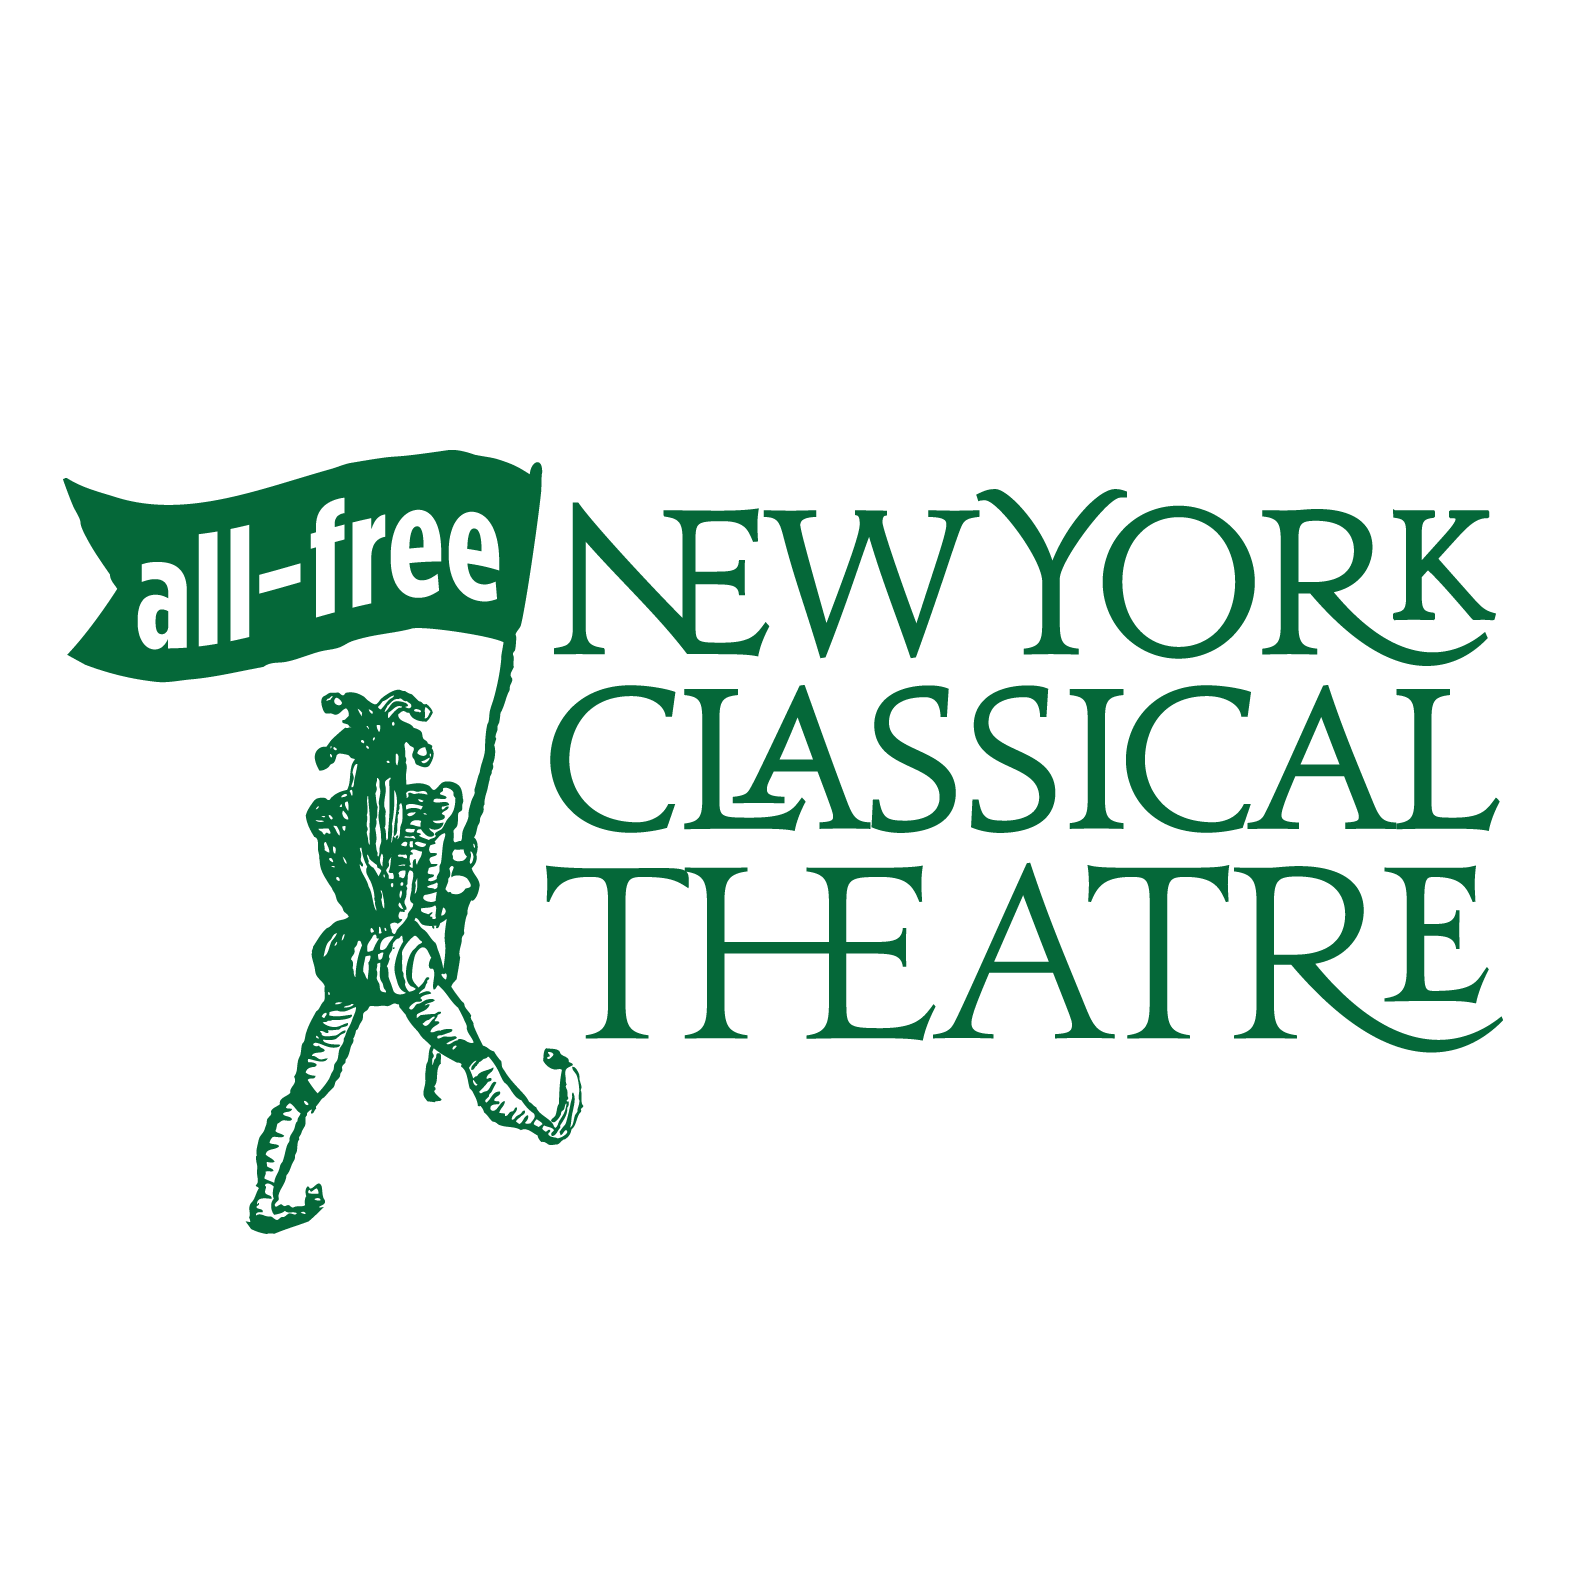 New York Classical Theatre: Producer in Macbeth (New York Classical Theatre)